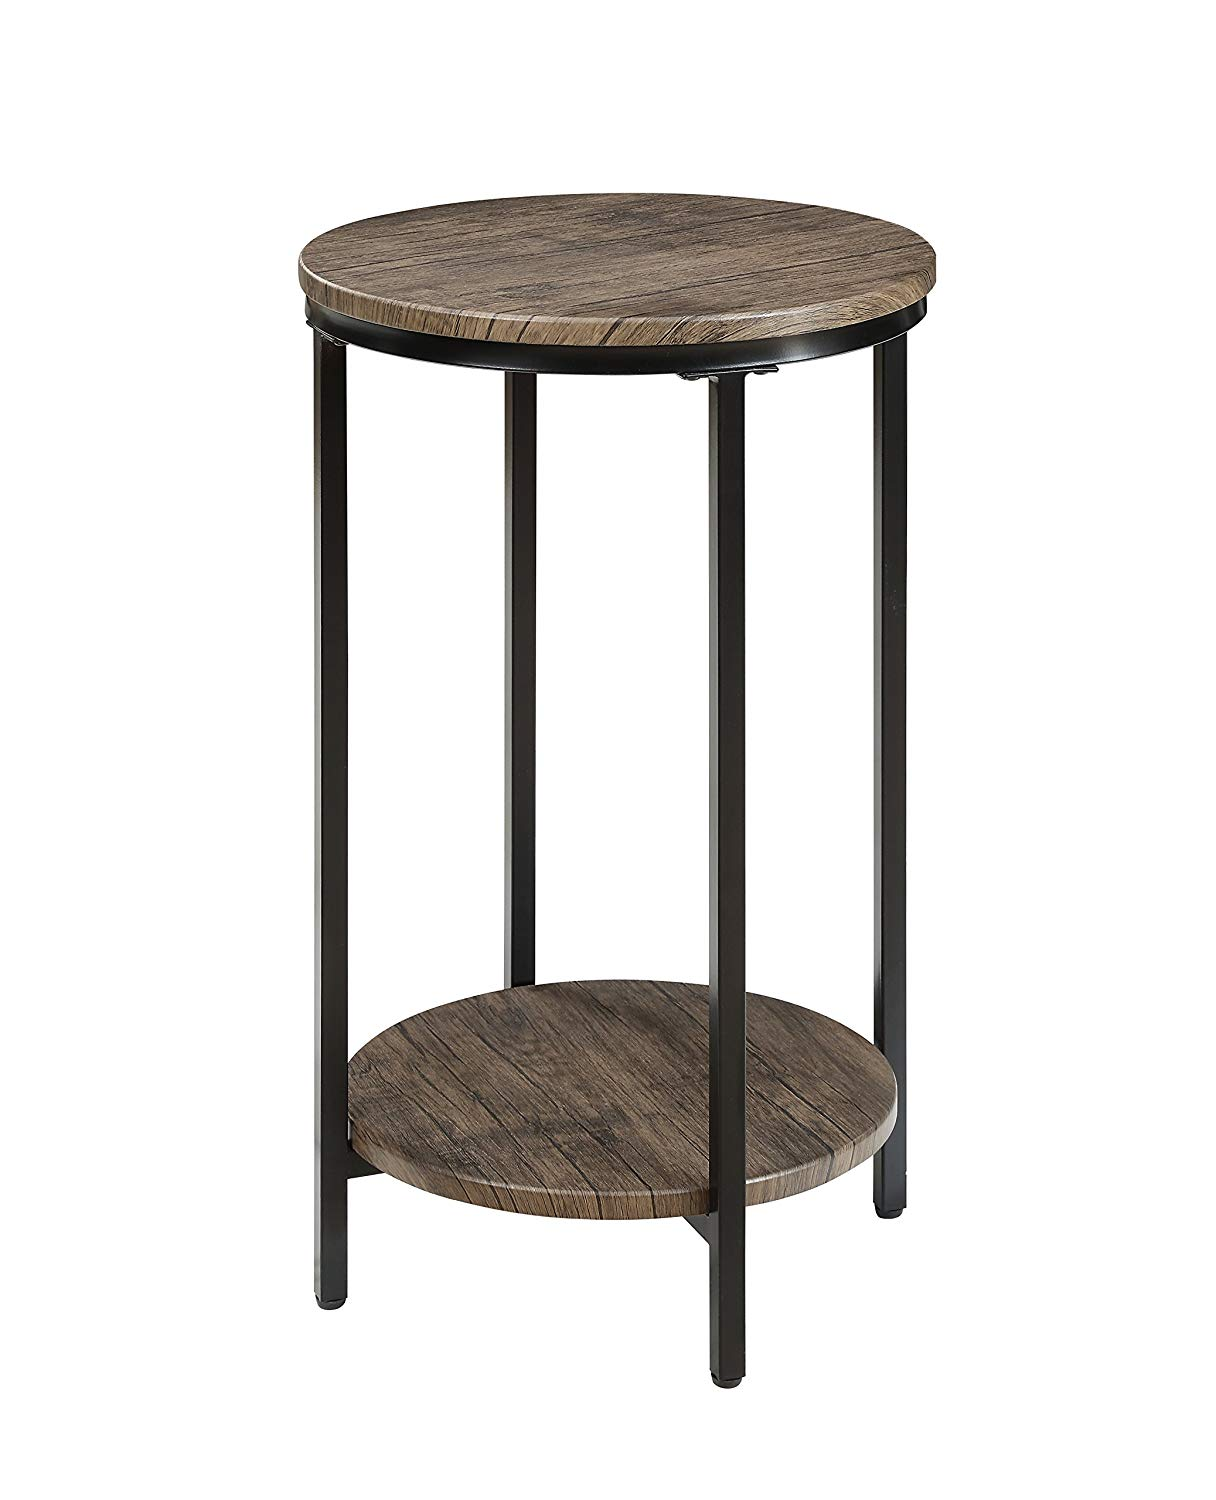 ton lane antique wood finish two tiered round end distressed table side with storage shelf for living room pecan kitchen liberty entertainment console lazy boy sofa chair